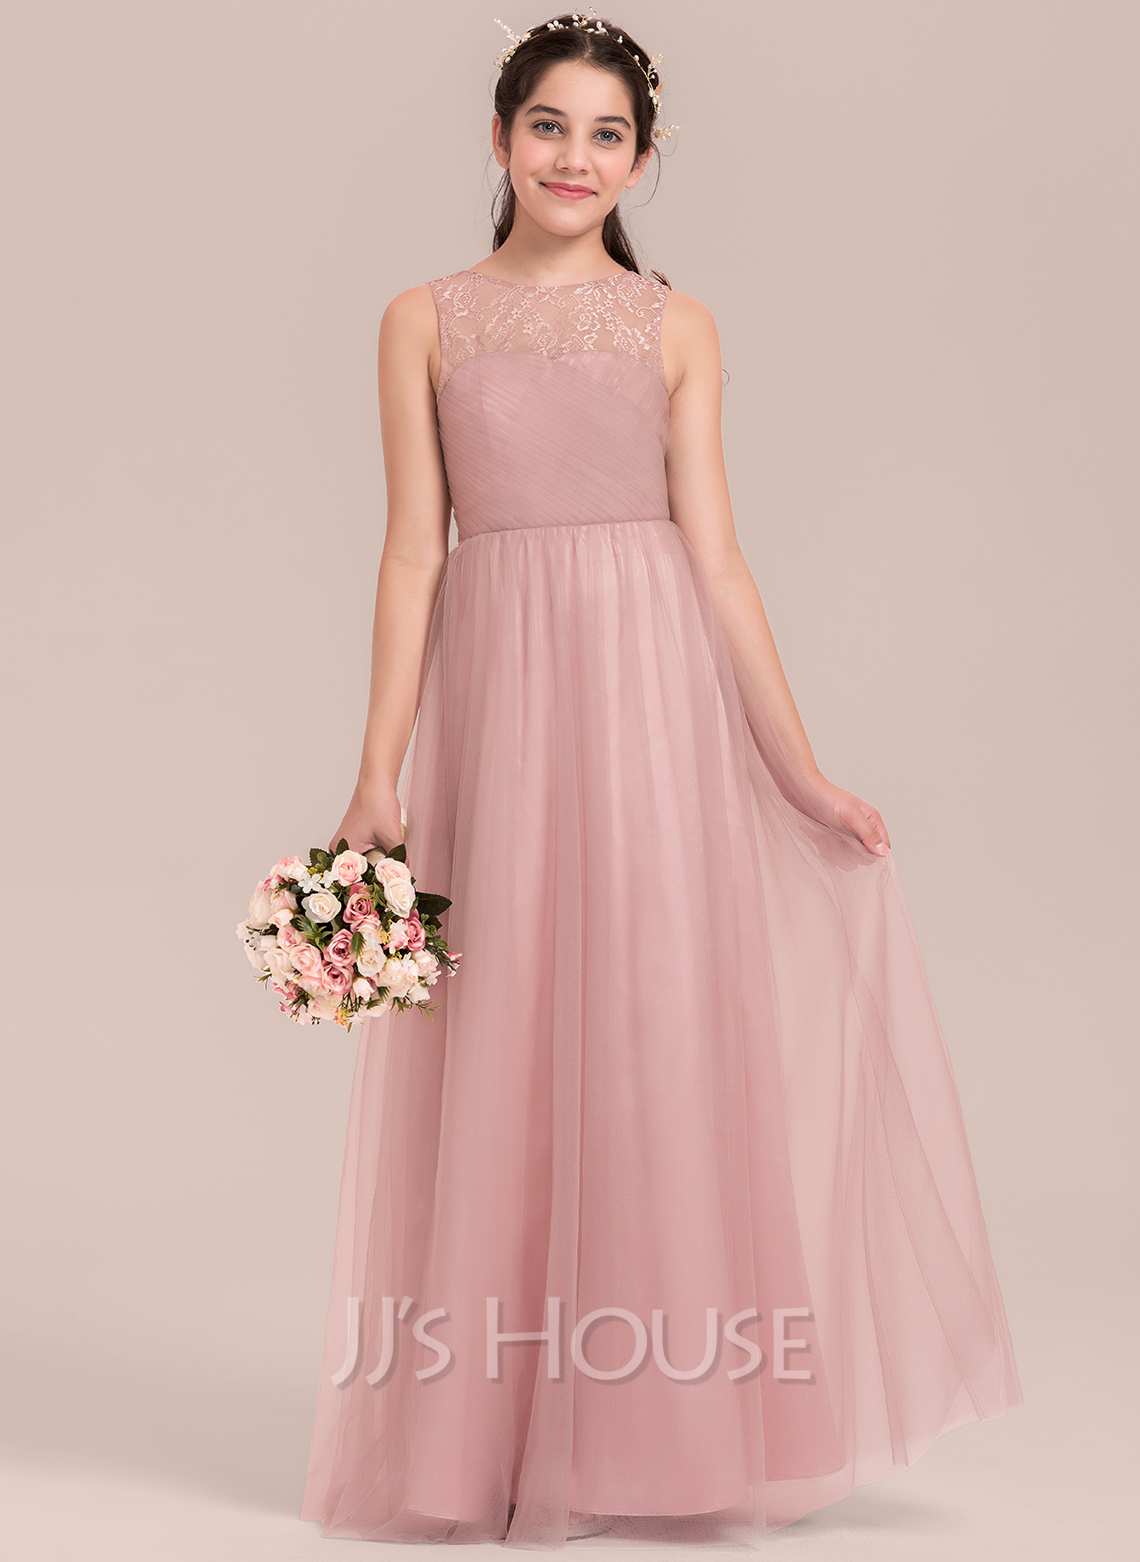 A-Line/Princess Scoop Neck Floor-Length Tulle Junior ... - photo#30